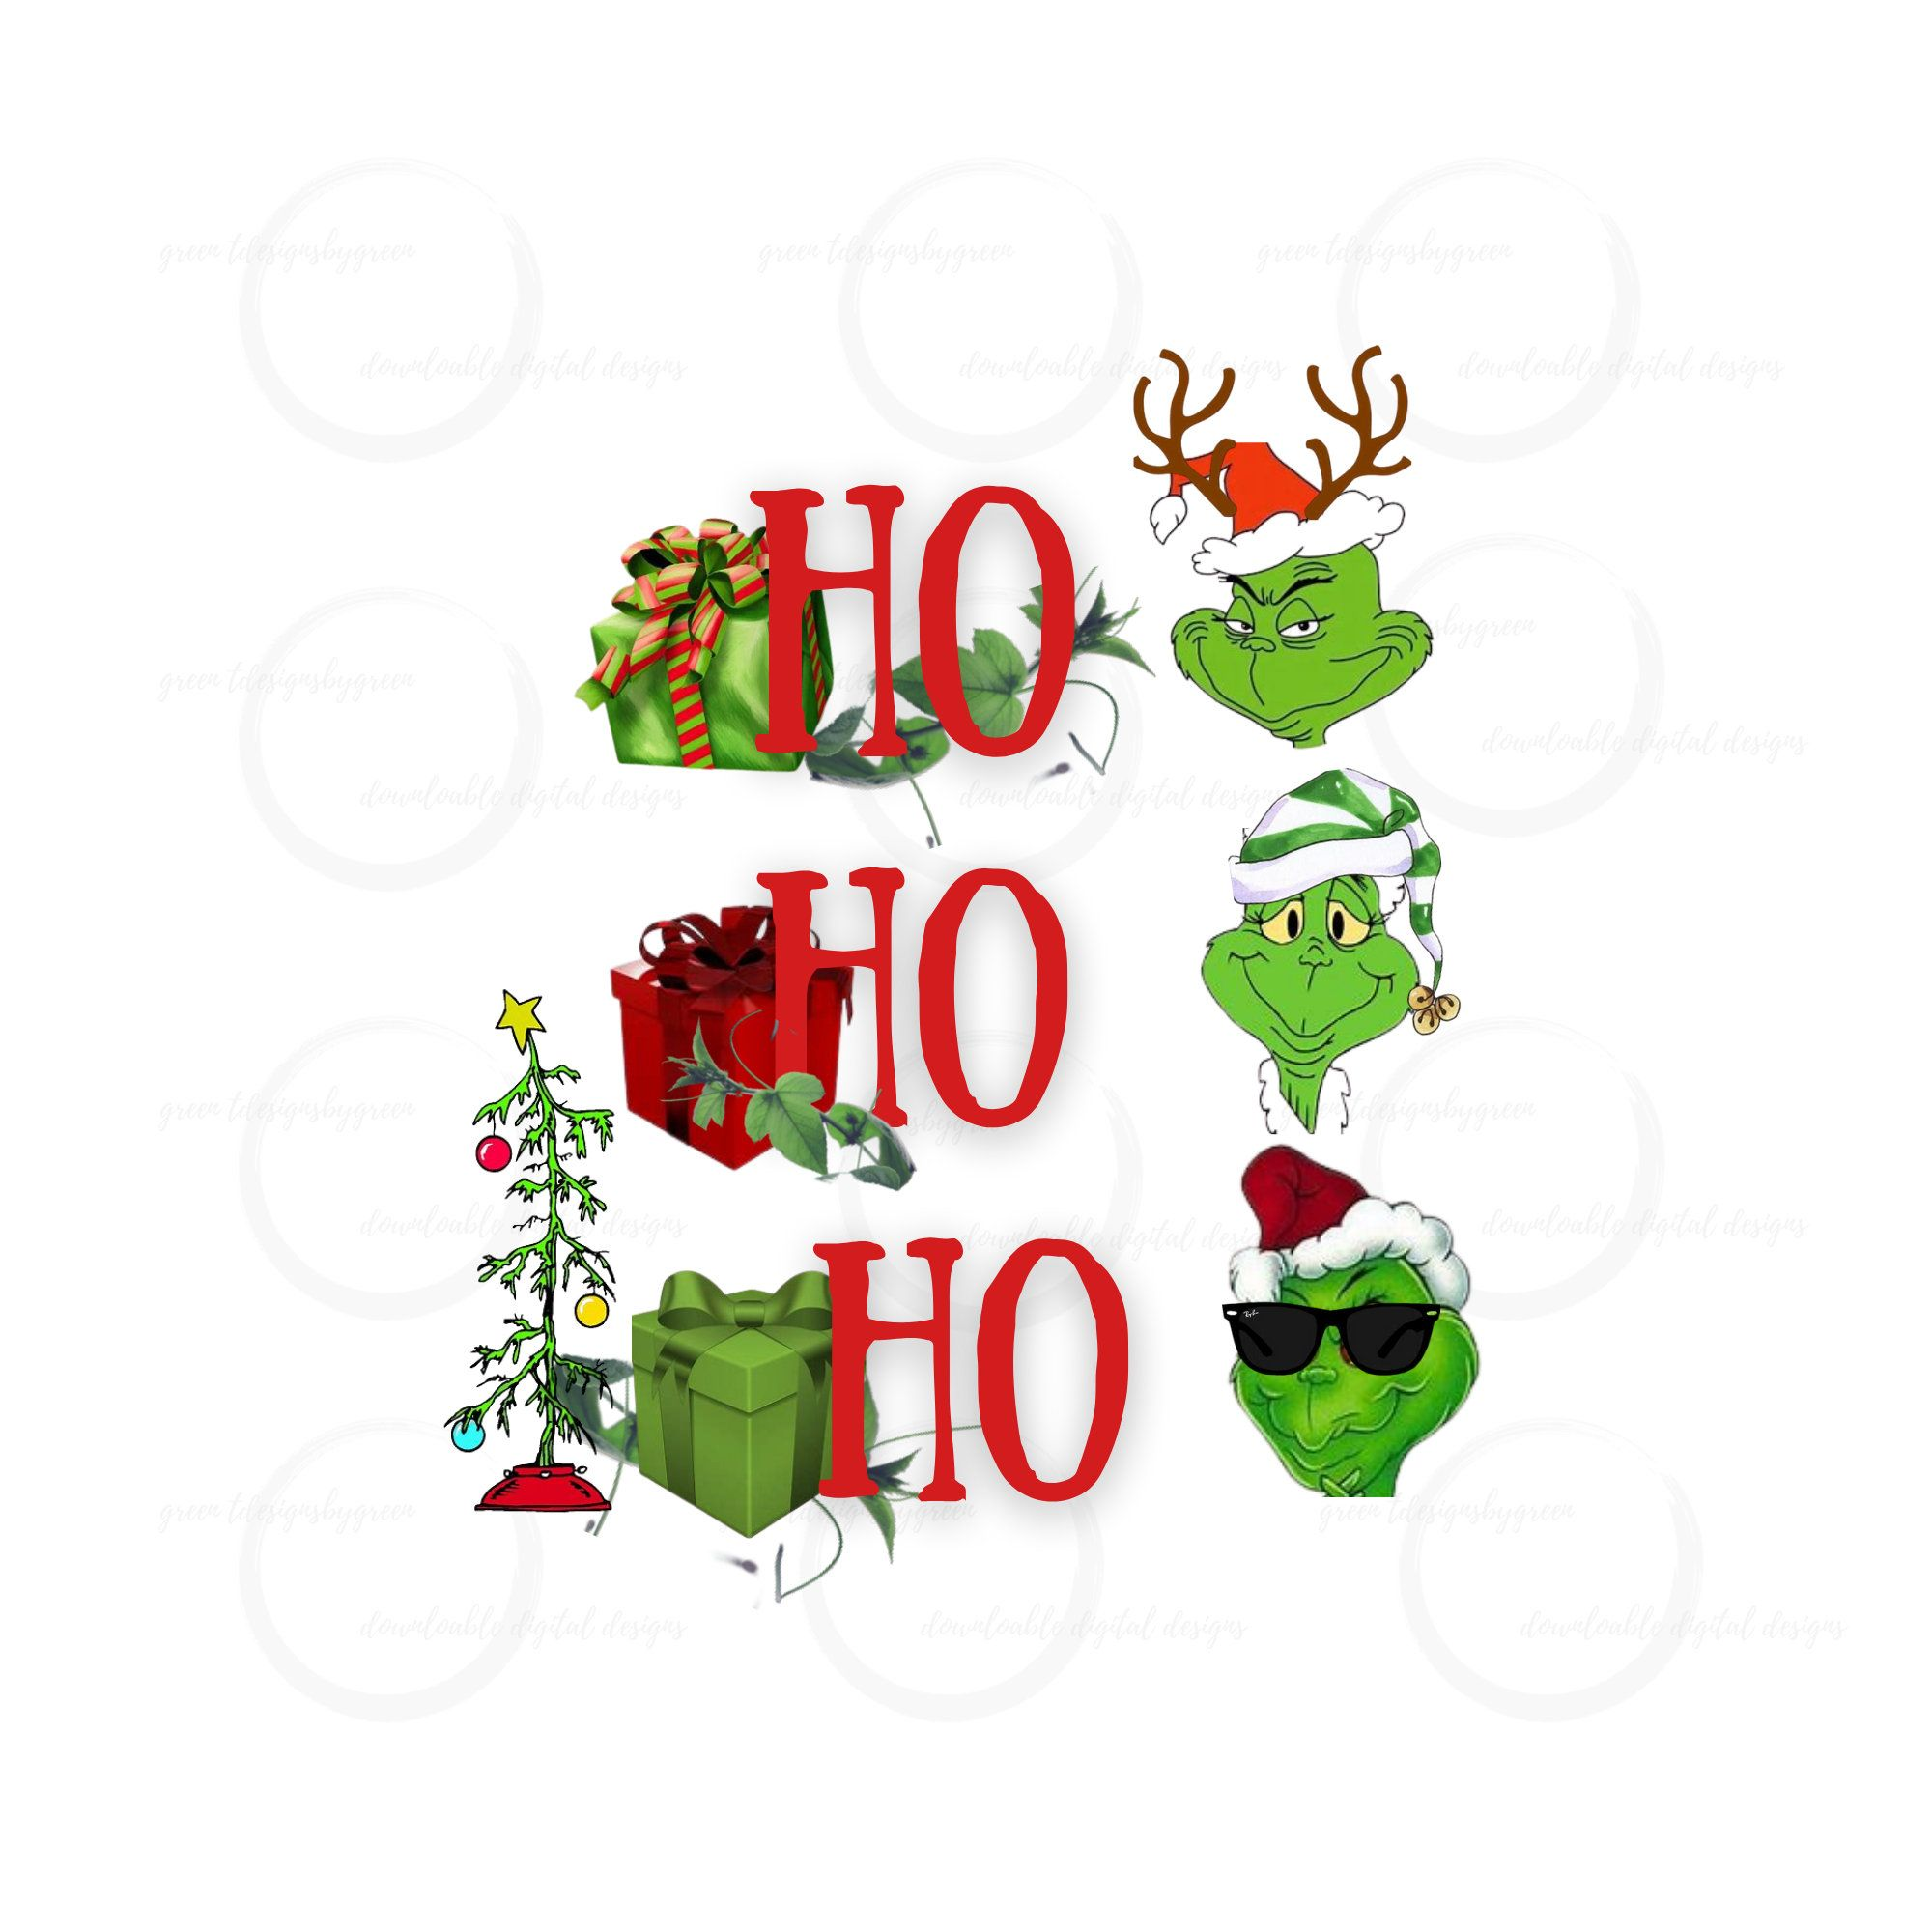 Grinch Christmas Png Featuring Three Grinch Faces Quote Reads Etsy In 2021 Grinch Christmas Grinch Png